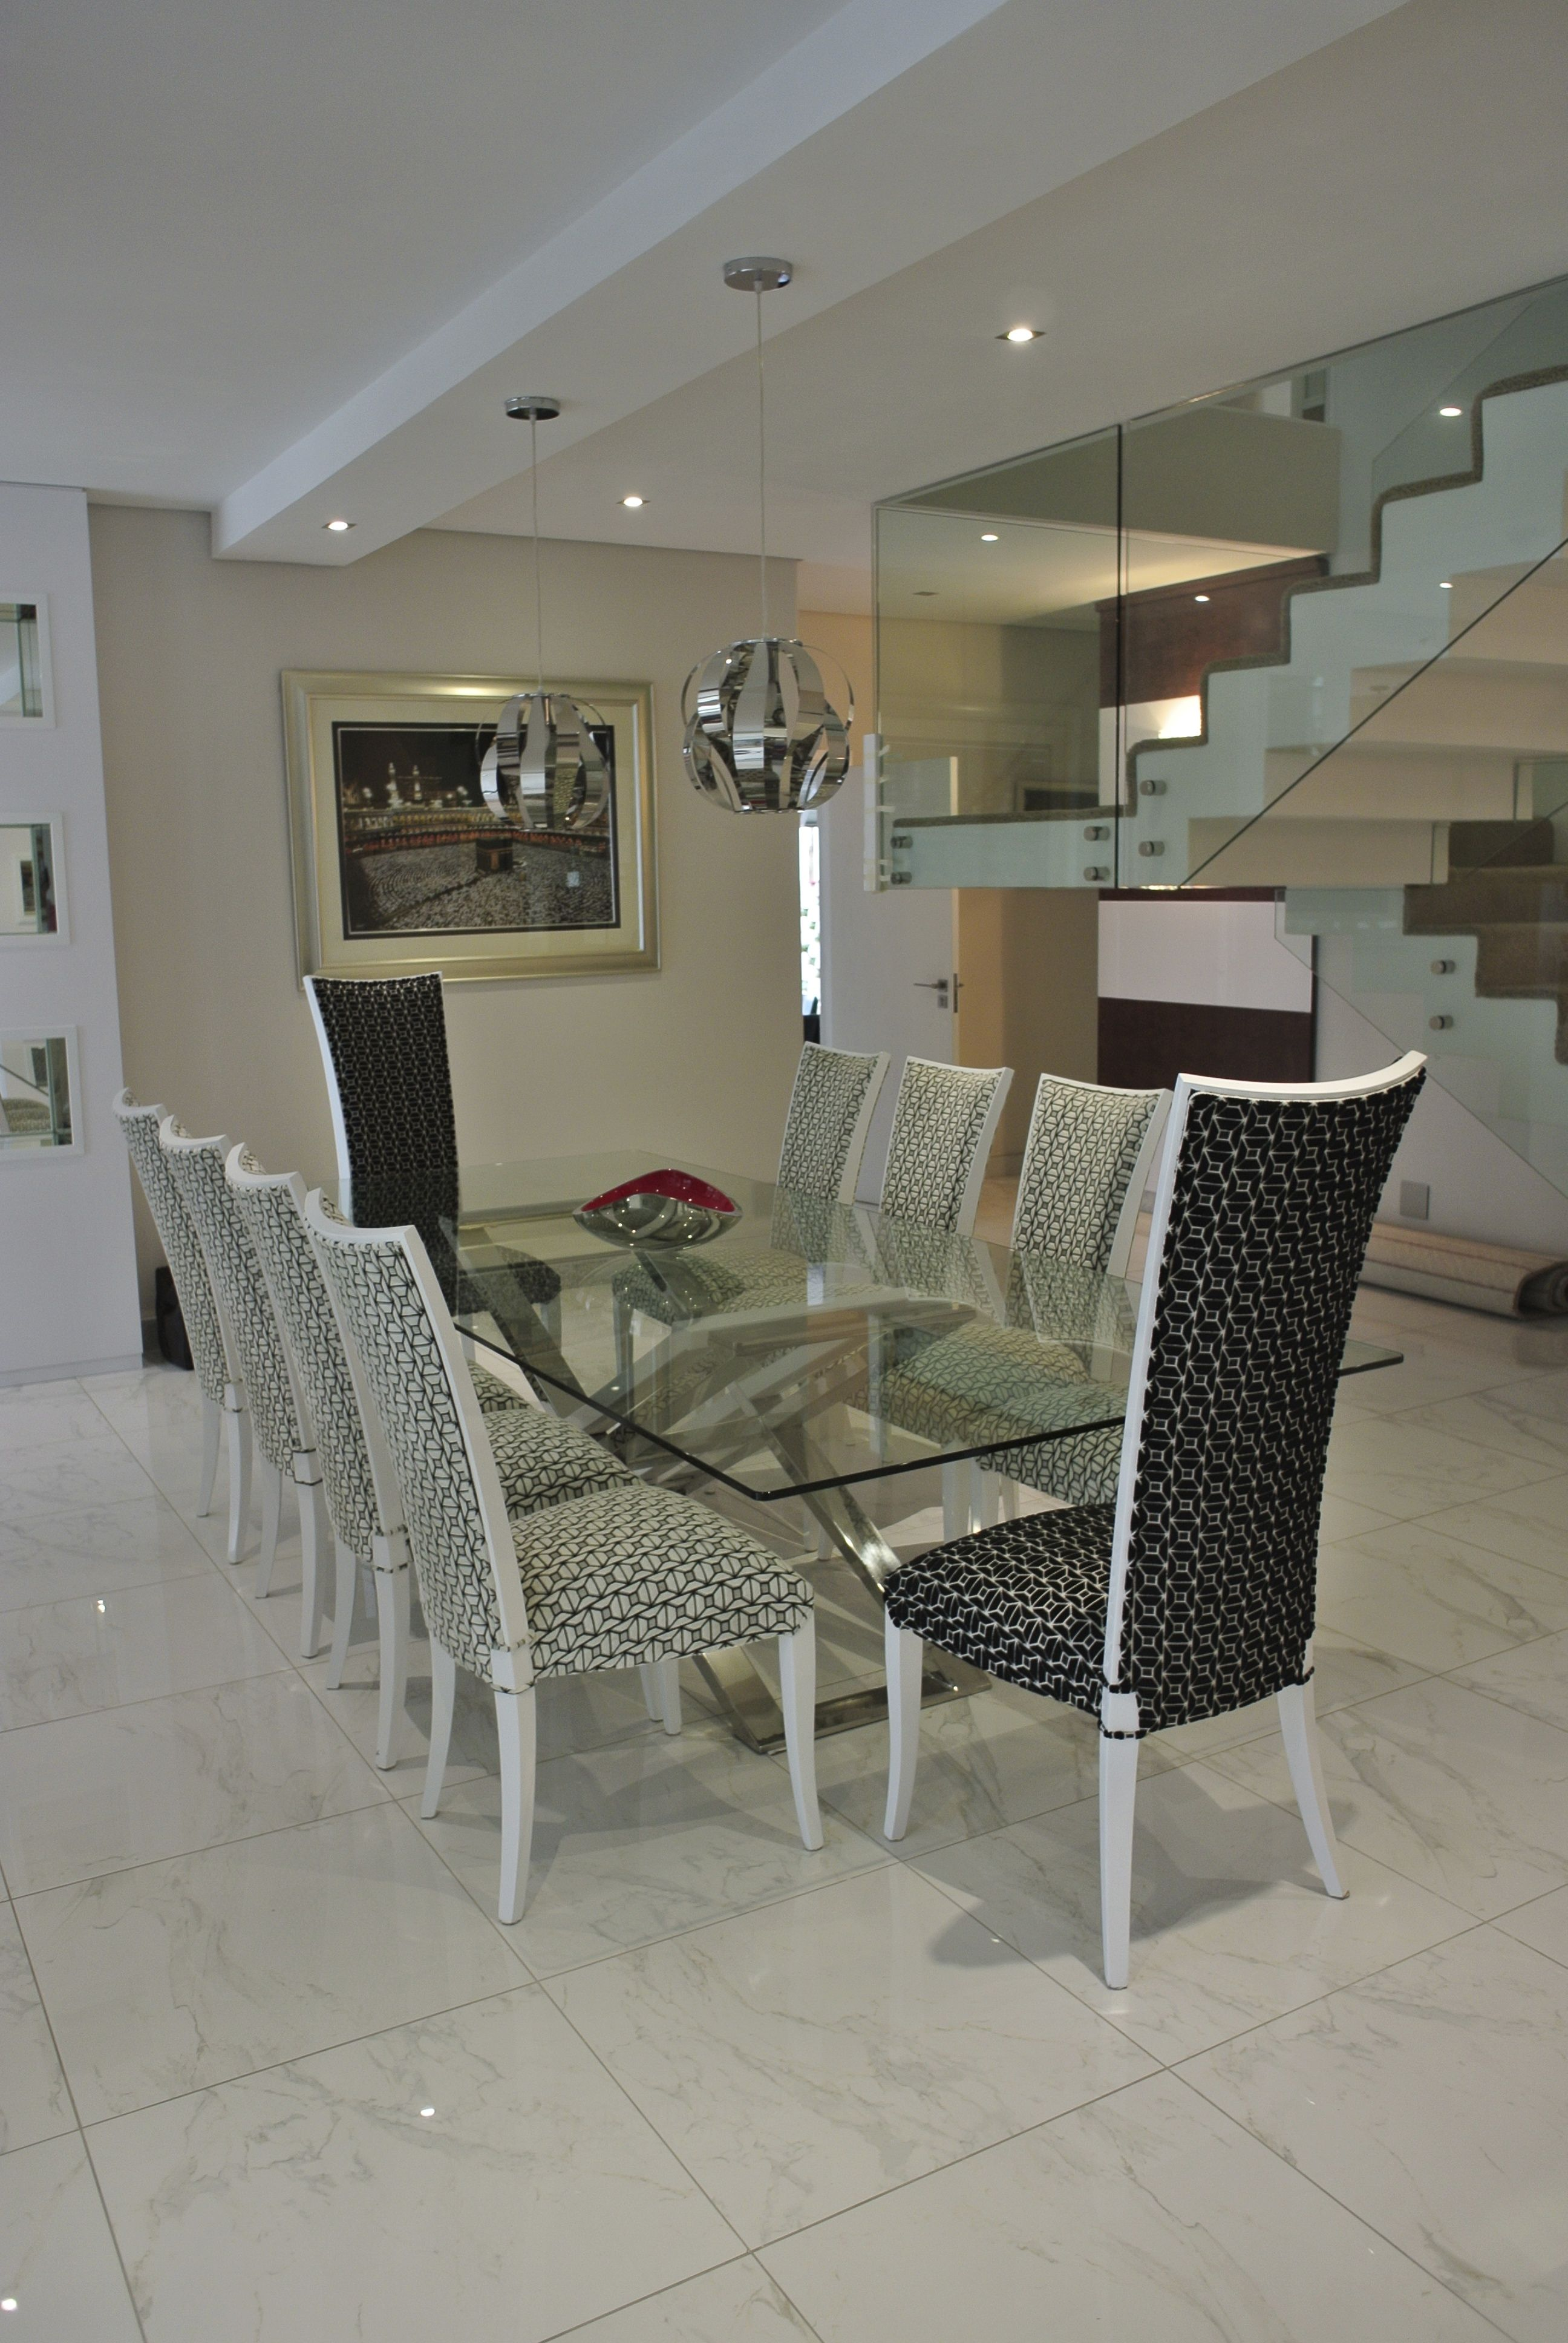 A bold modern stainless steel table softened